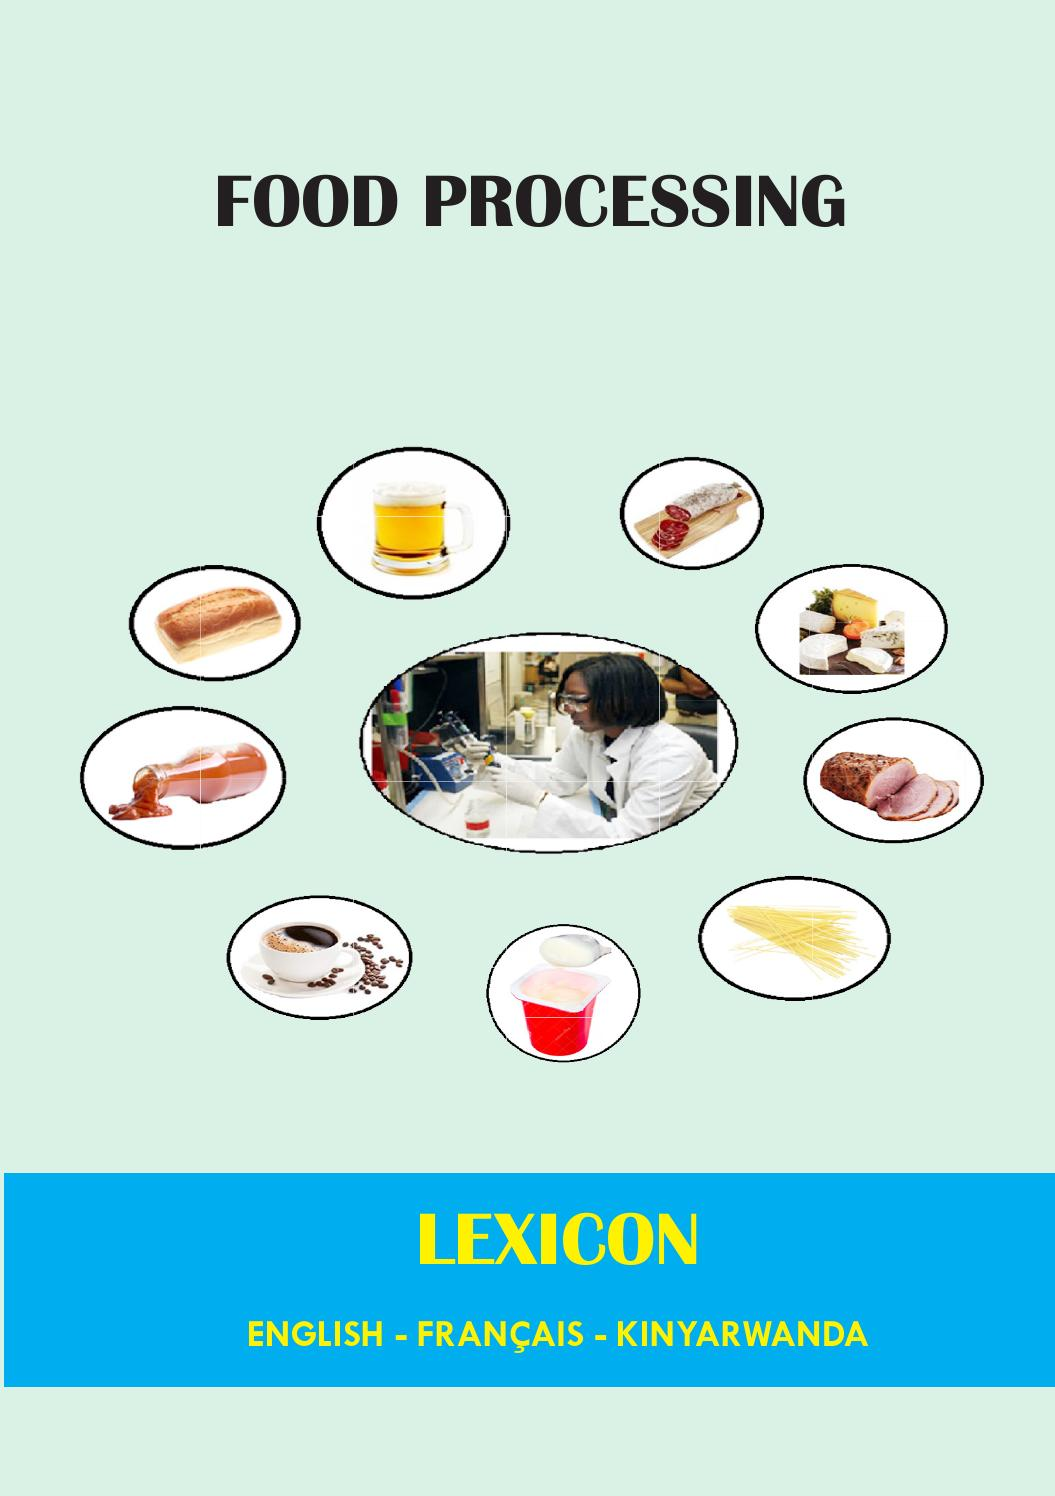 Feu De Cheminee En Anglais Food Processing Lexicon English French Kinyarwanda